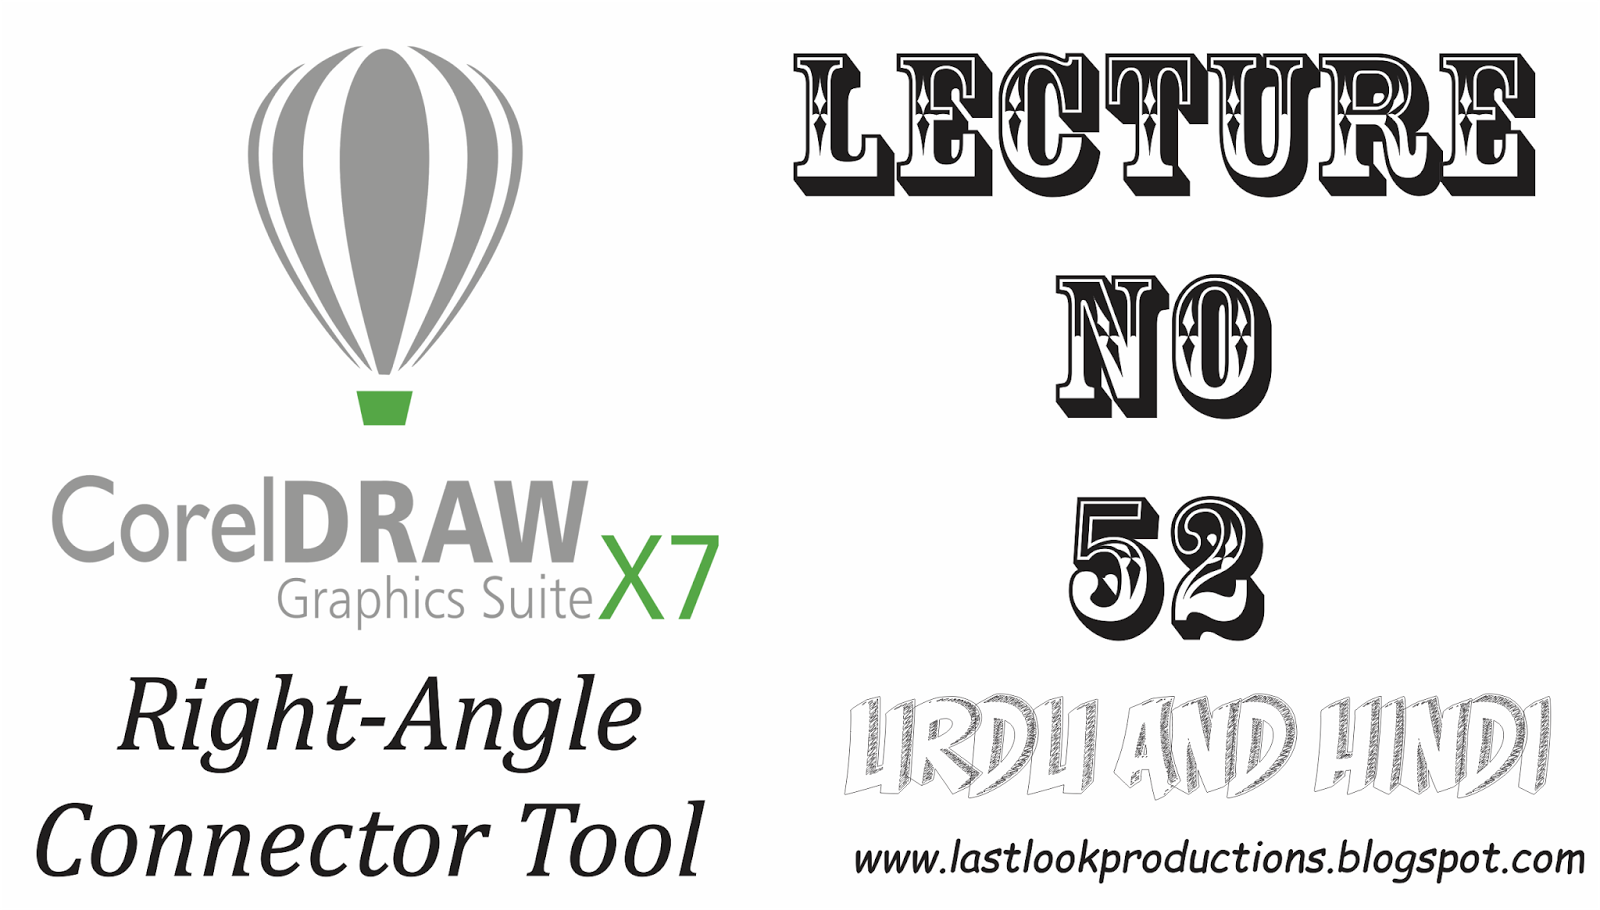 """CorelDRAW Graphic Suit X7 - """"Right-Angles Connector Tool"""